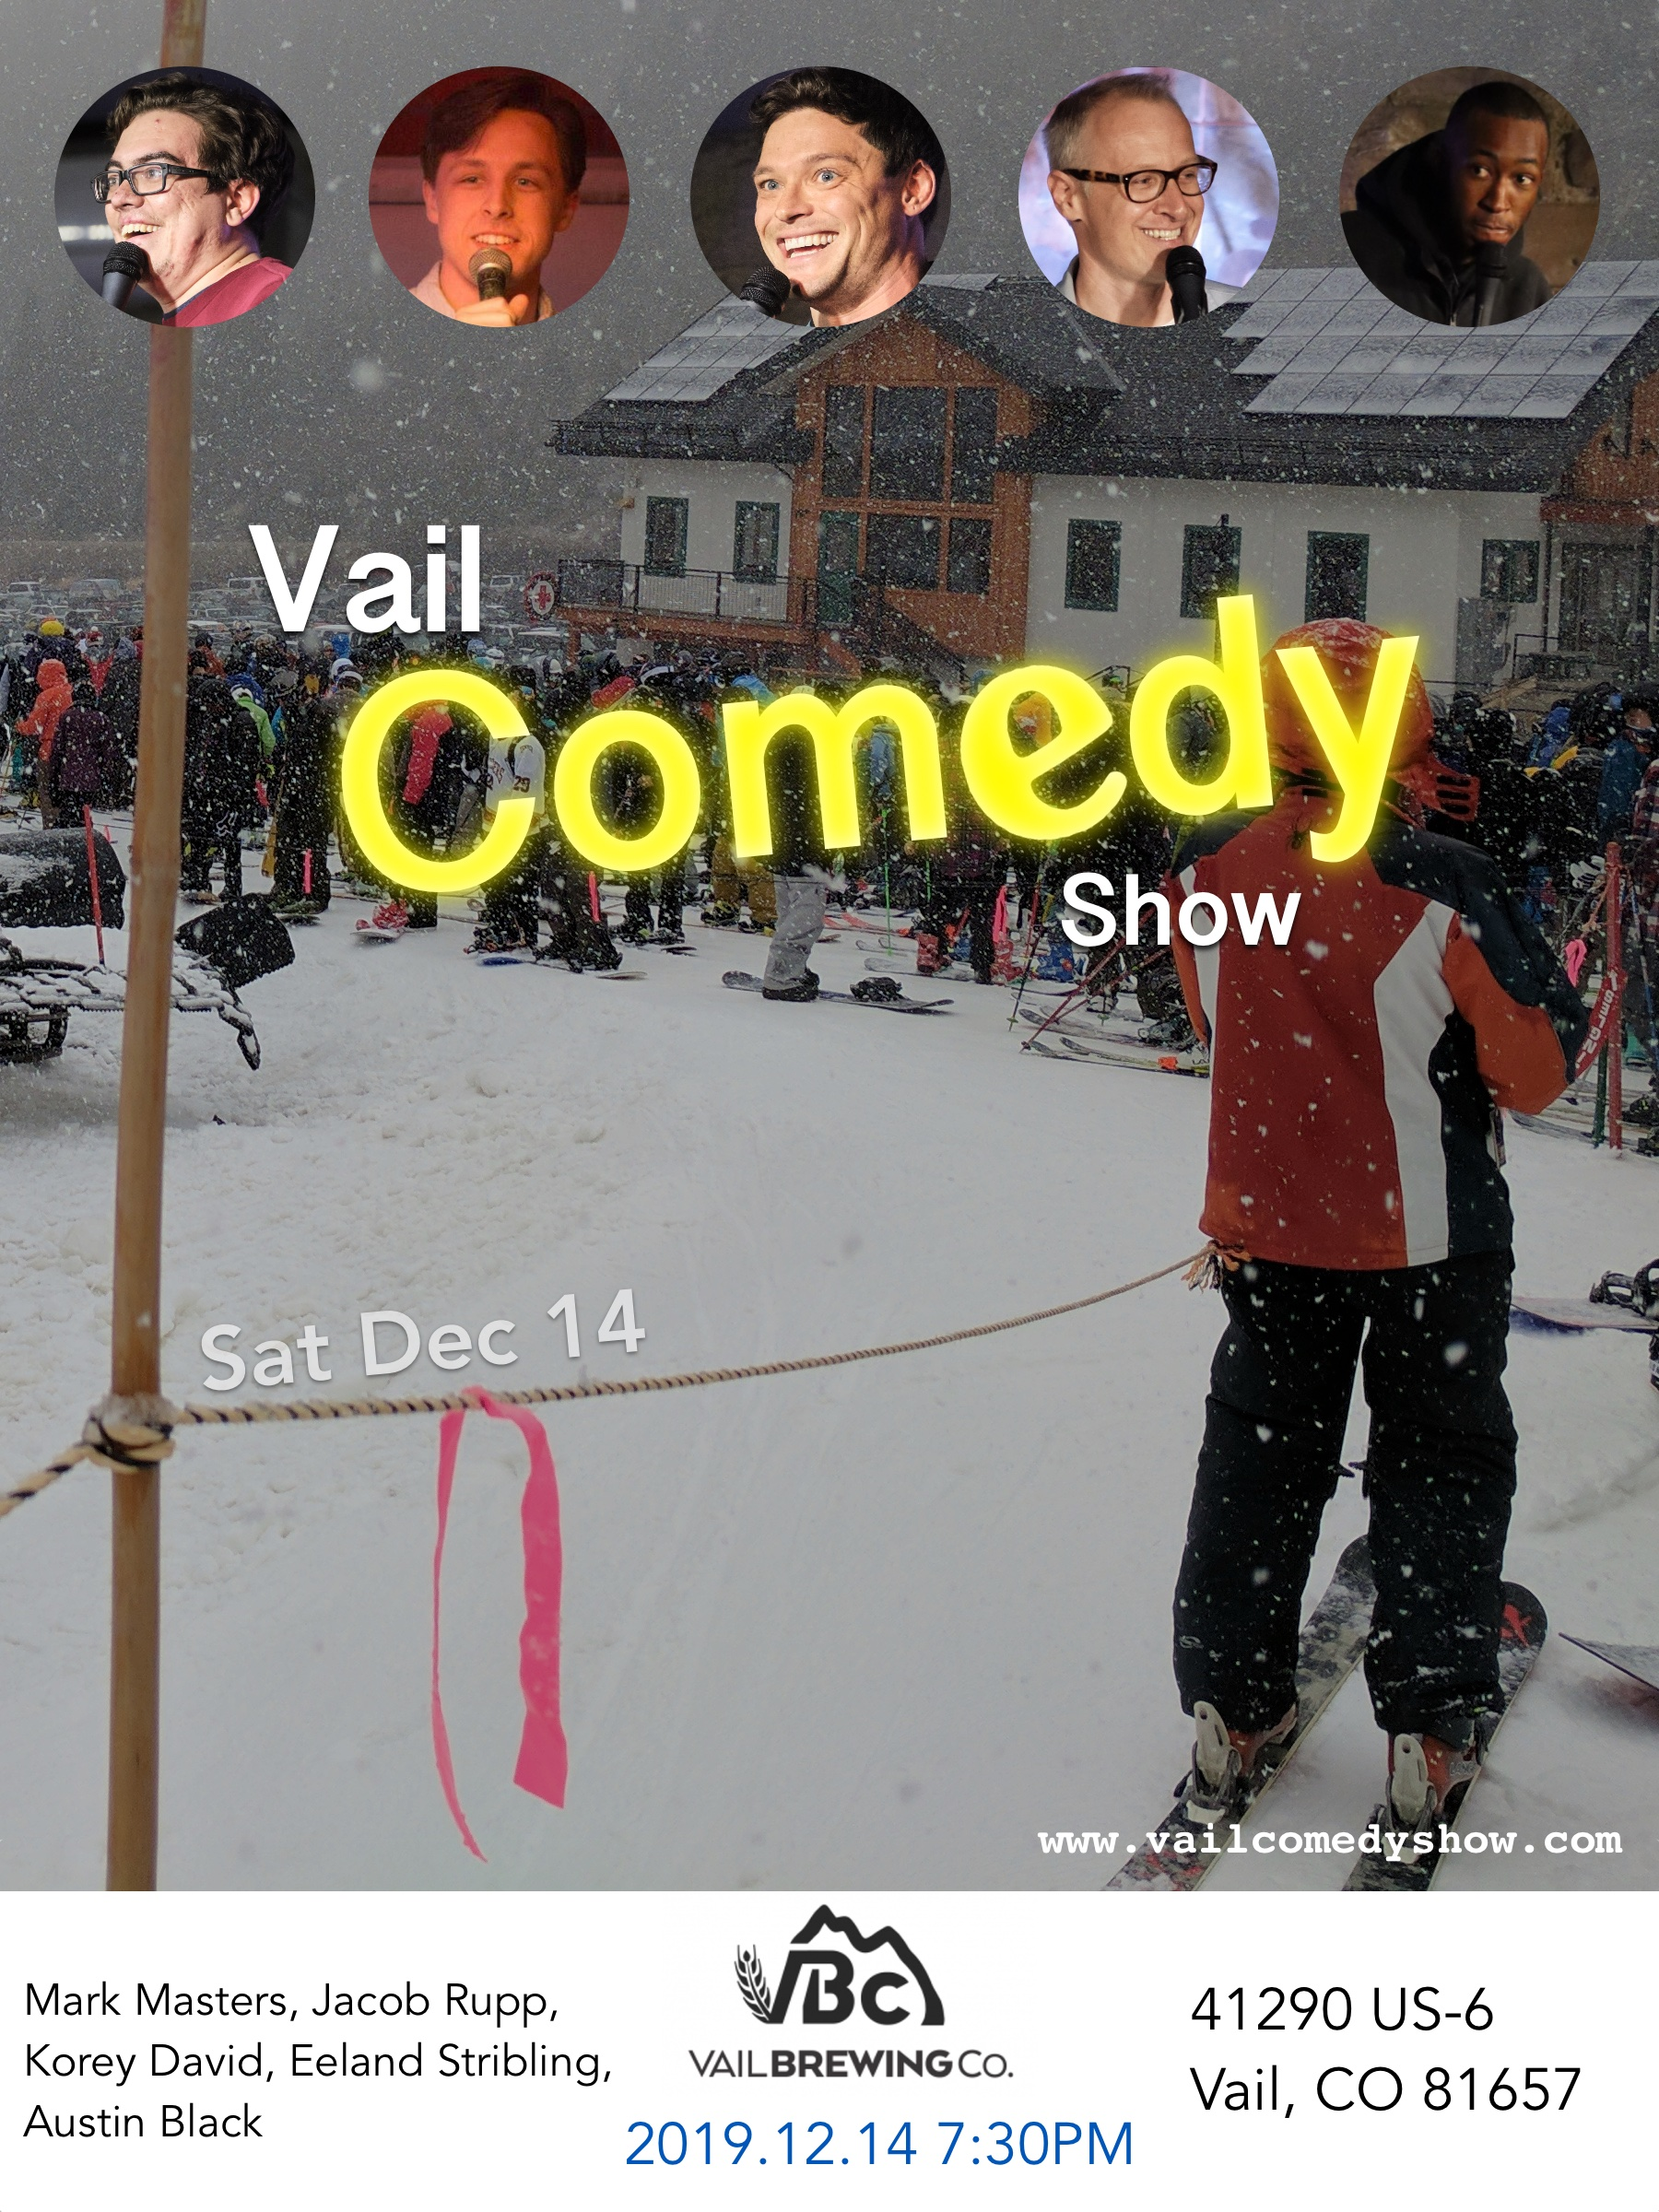 Image of show poster